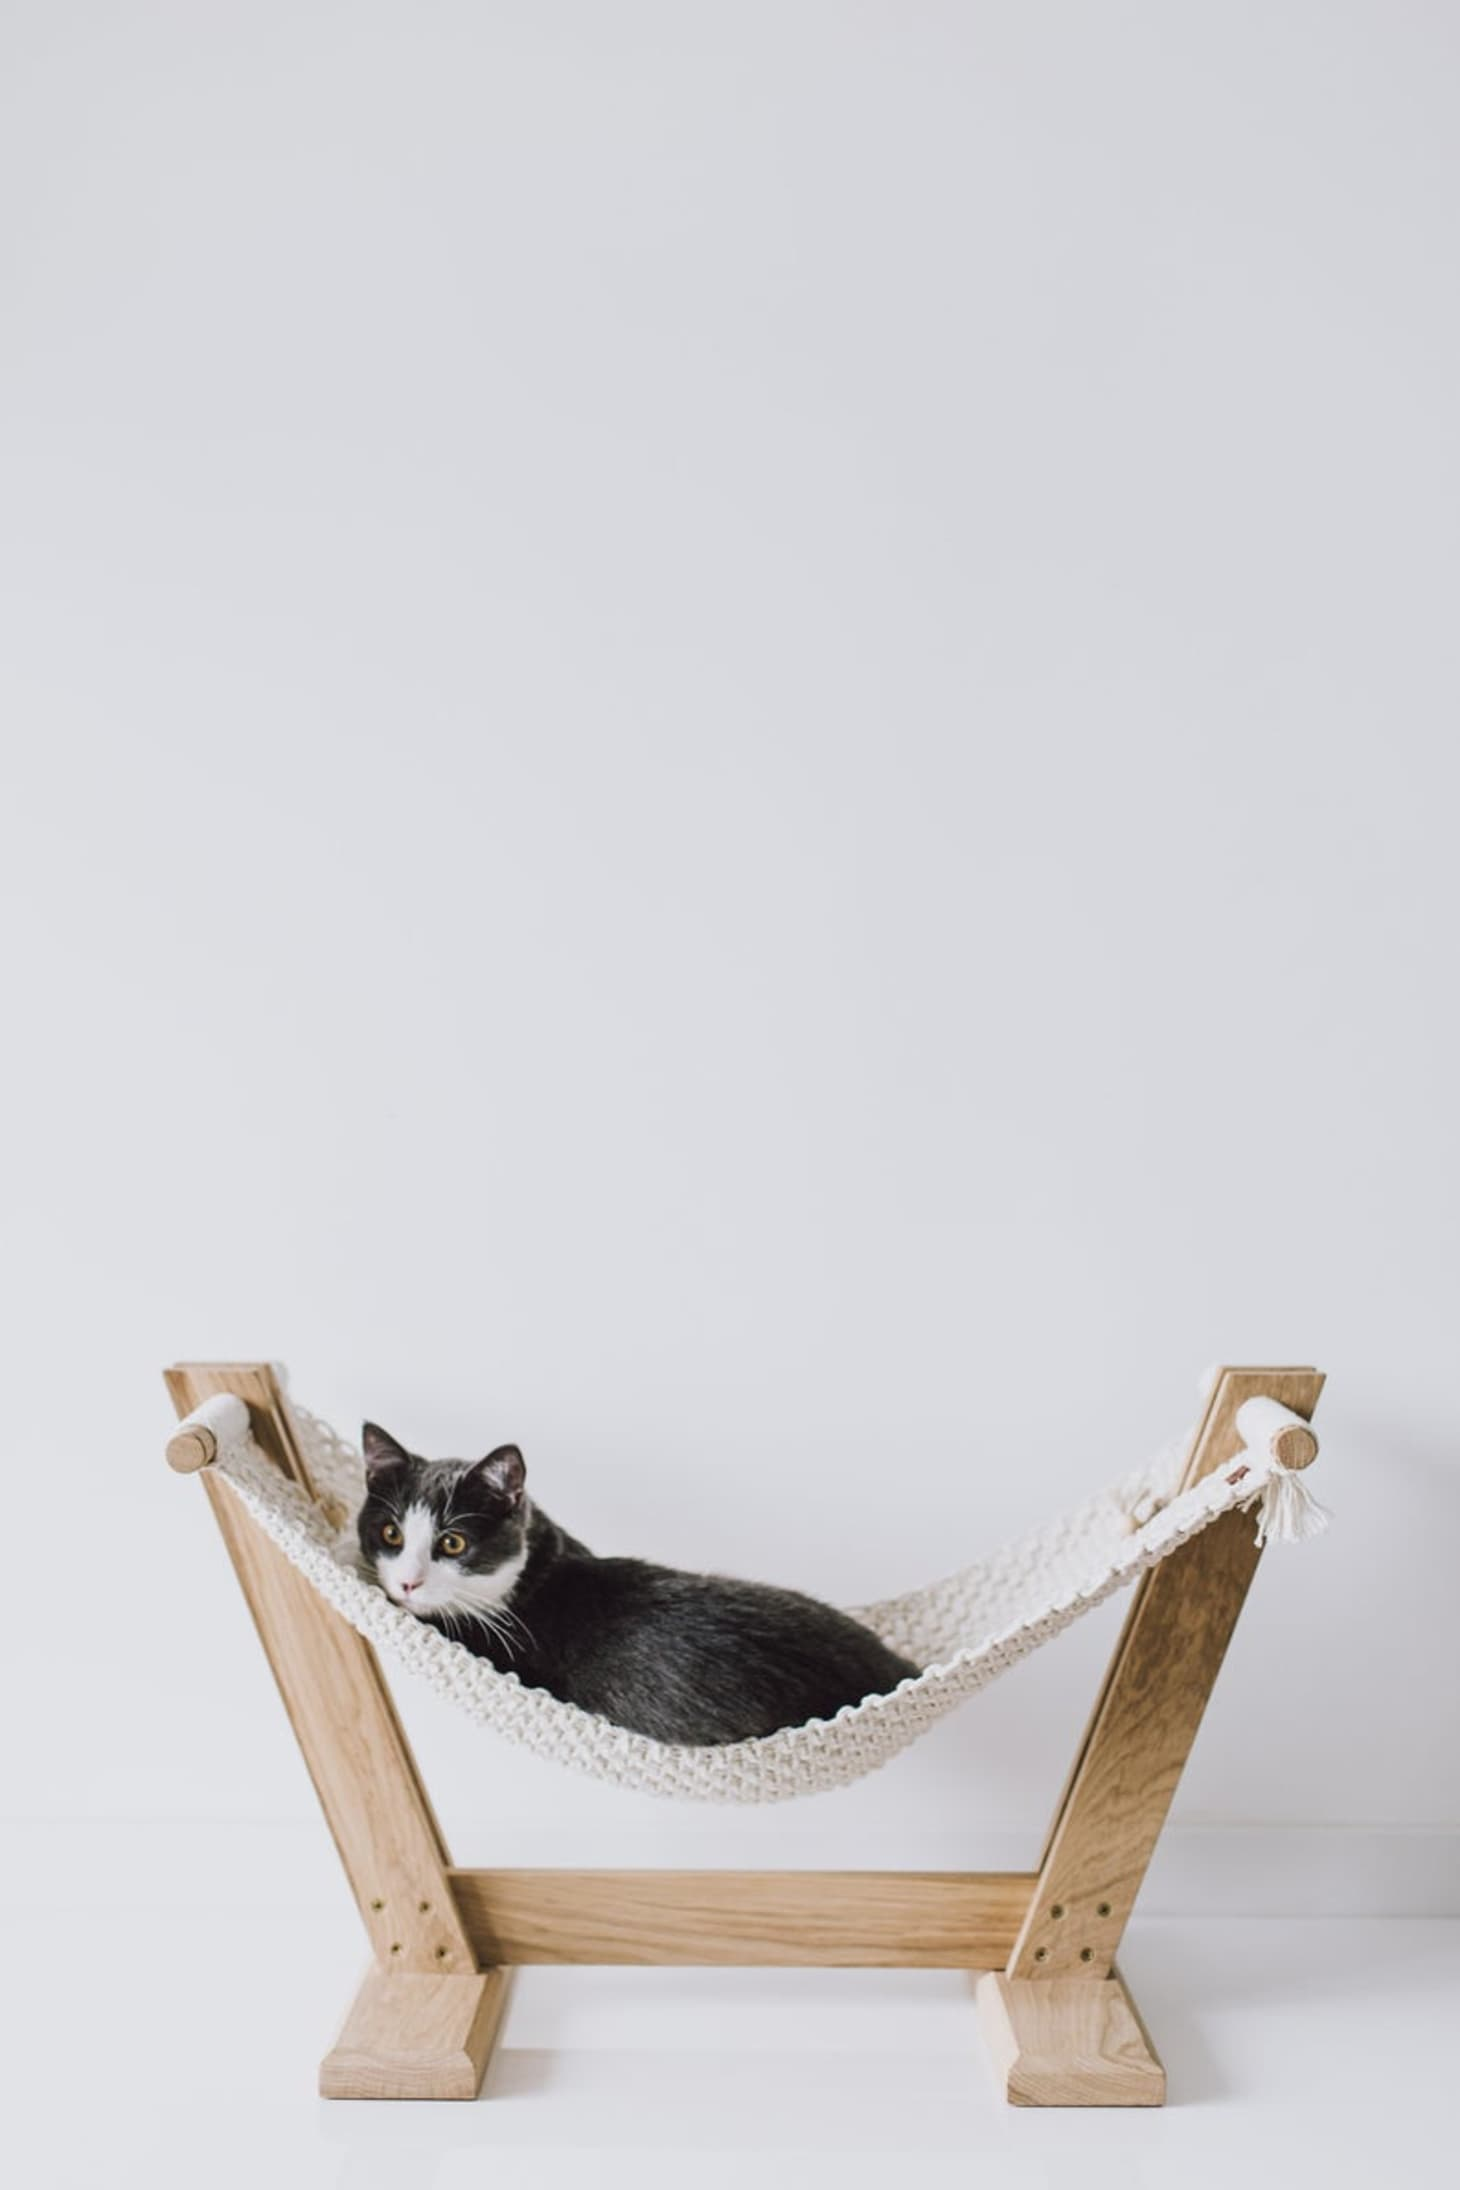 Macrame Cat Hammock Bed Etsy Maka Art Crafts Apartment Therapy